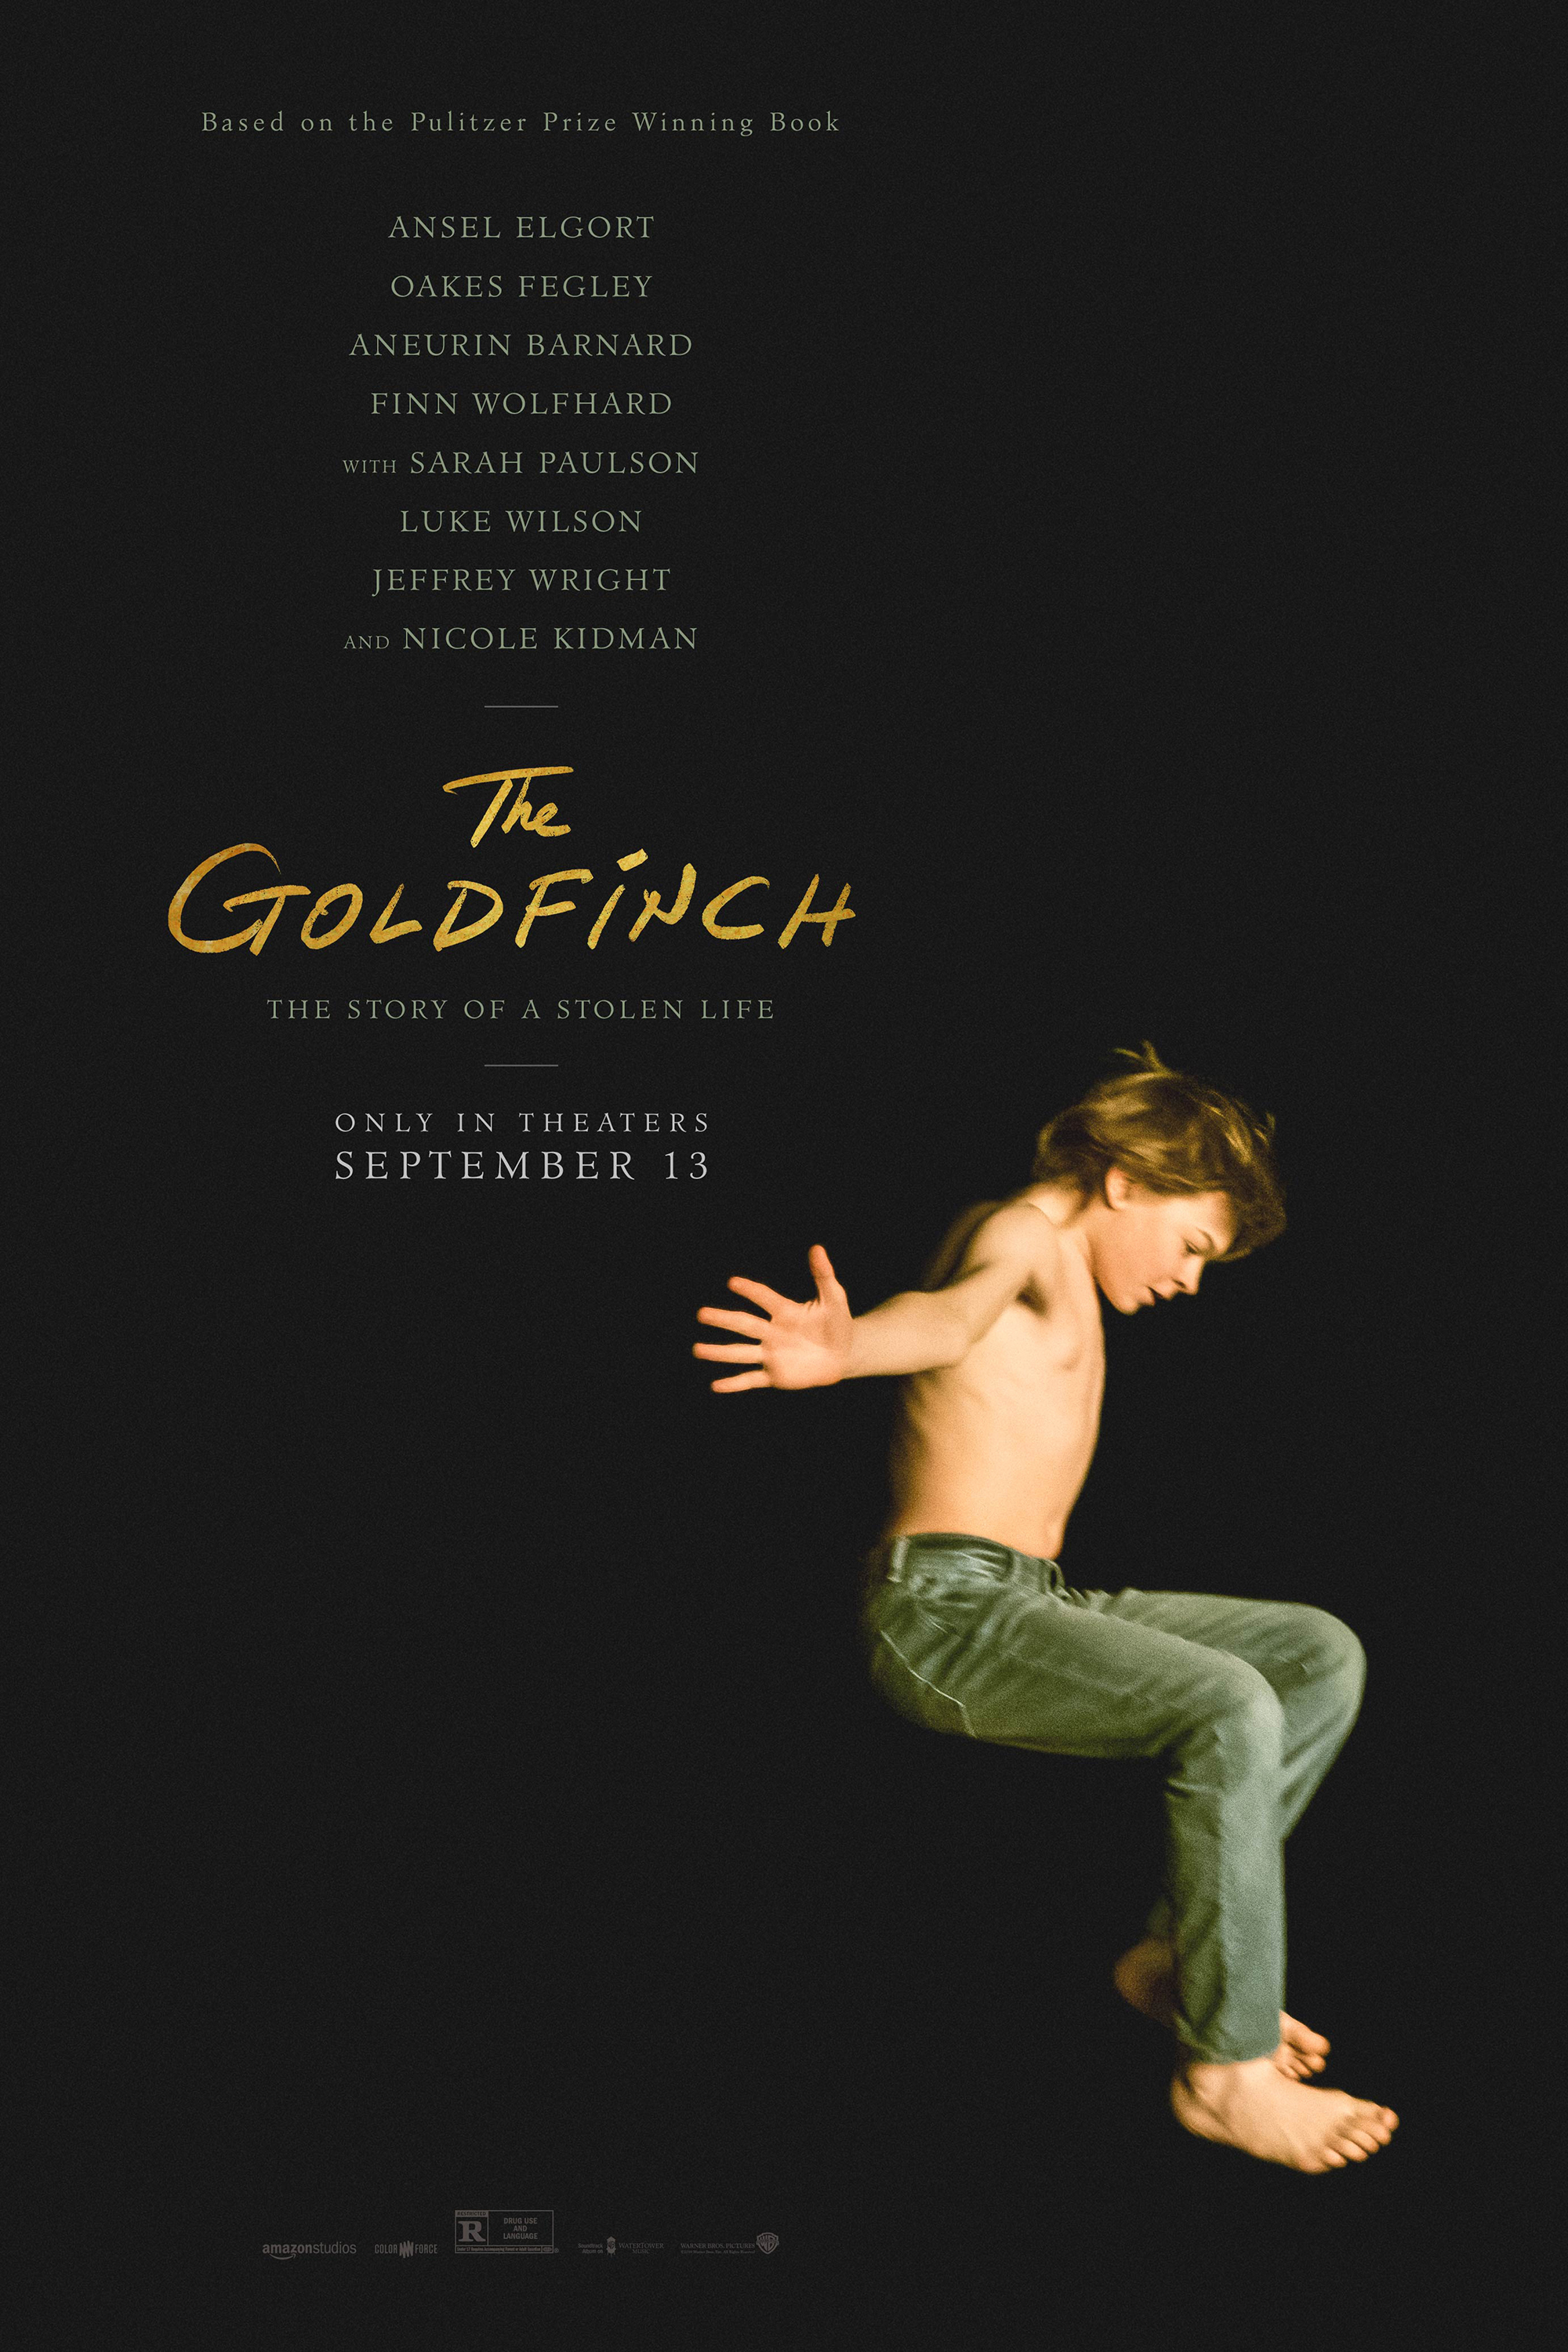 Poster for Goldfinch, The